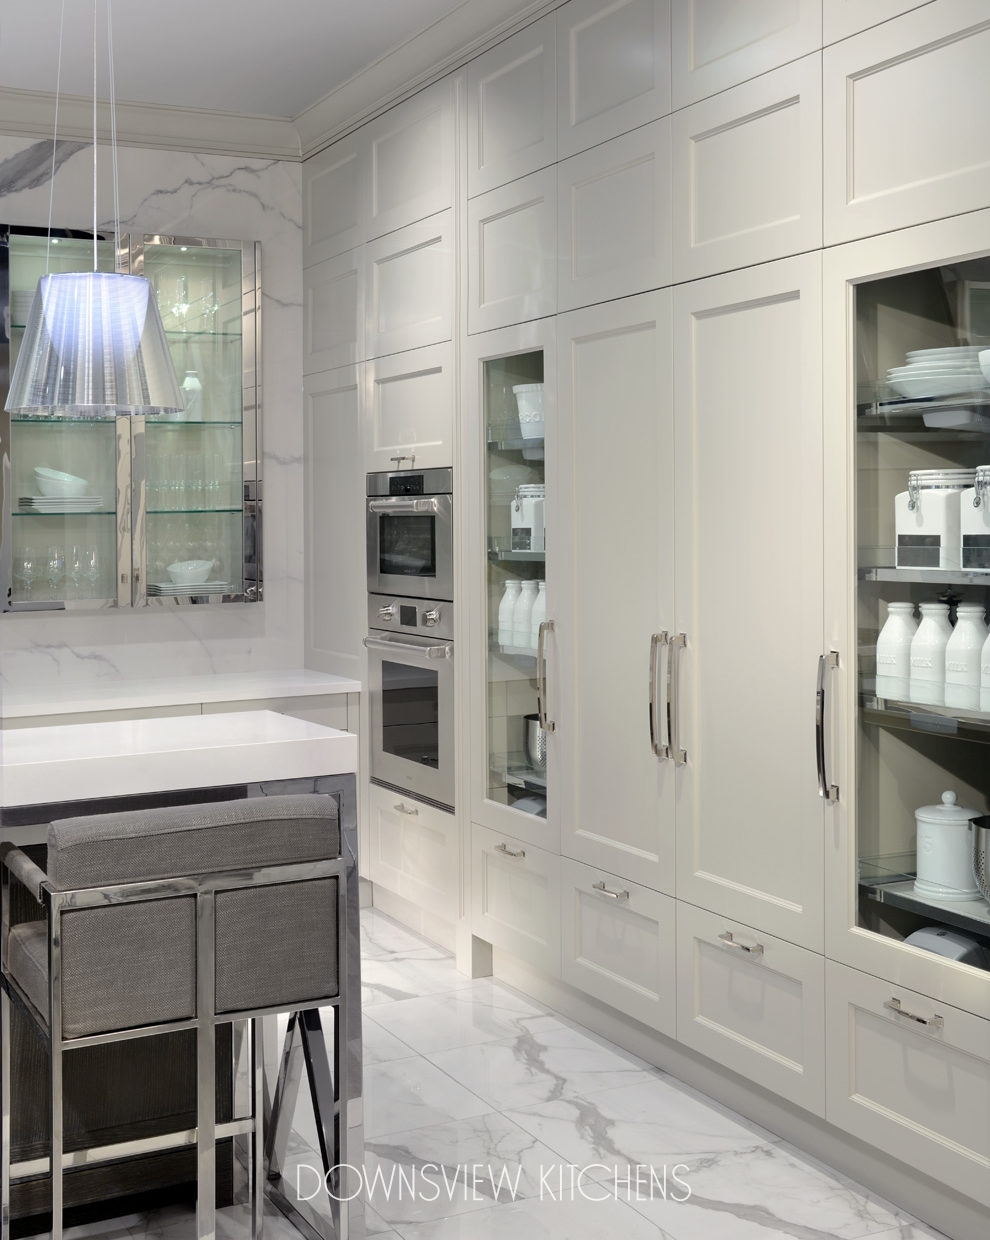 Brilliant Performance Downsview Kitchens And Fine Custom